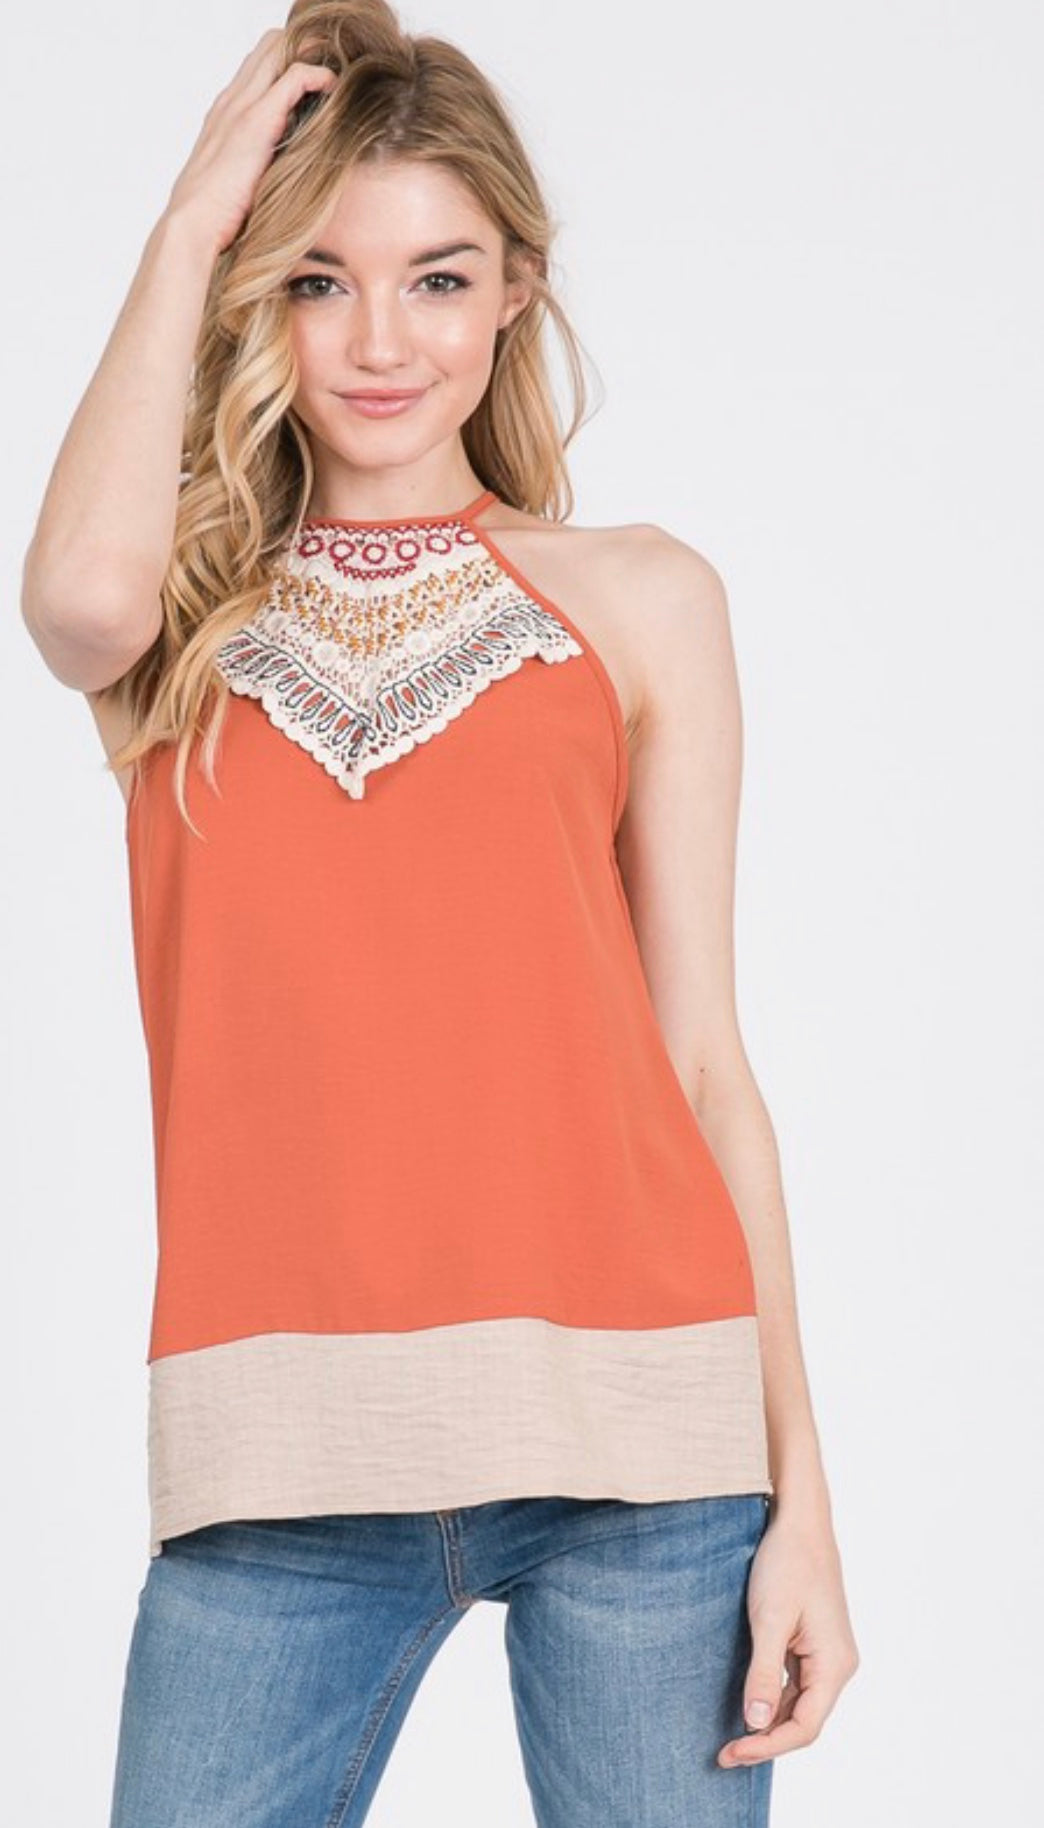 Carefree Summer Halter Top